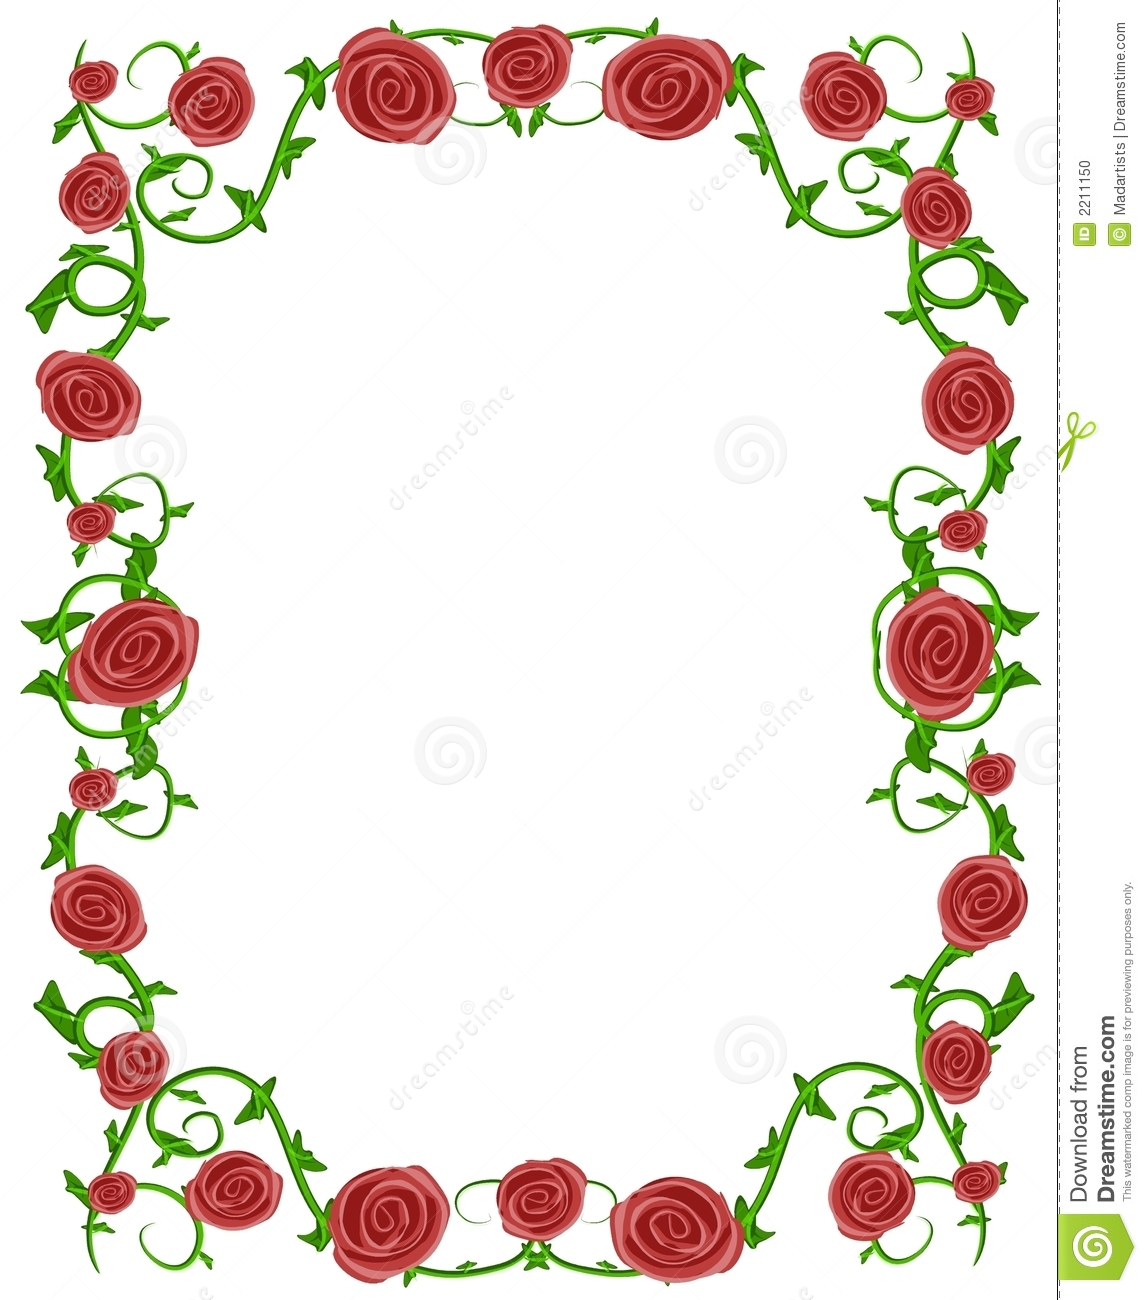 Rose Page Borders